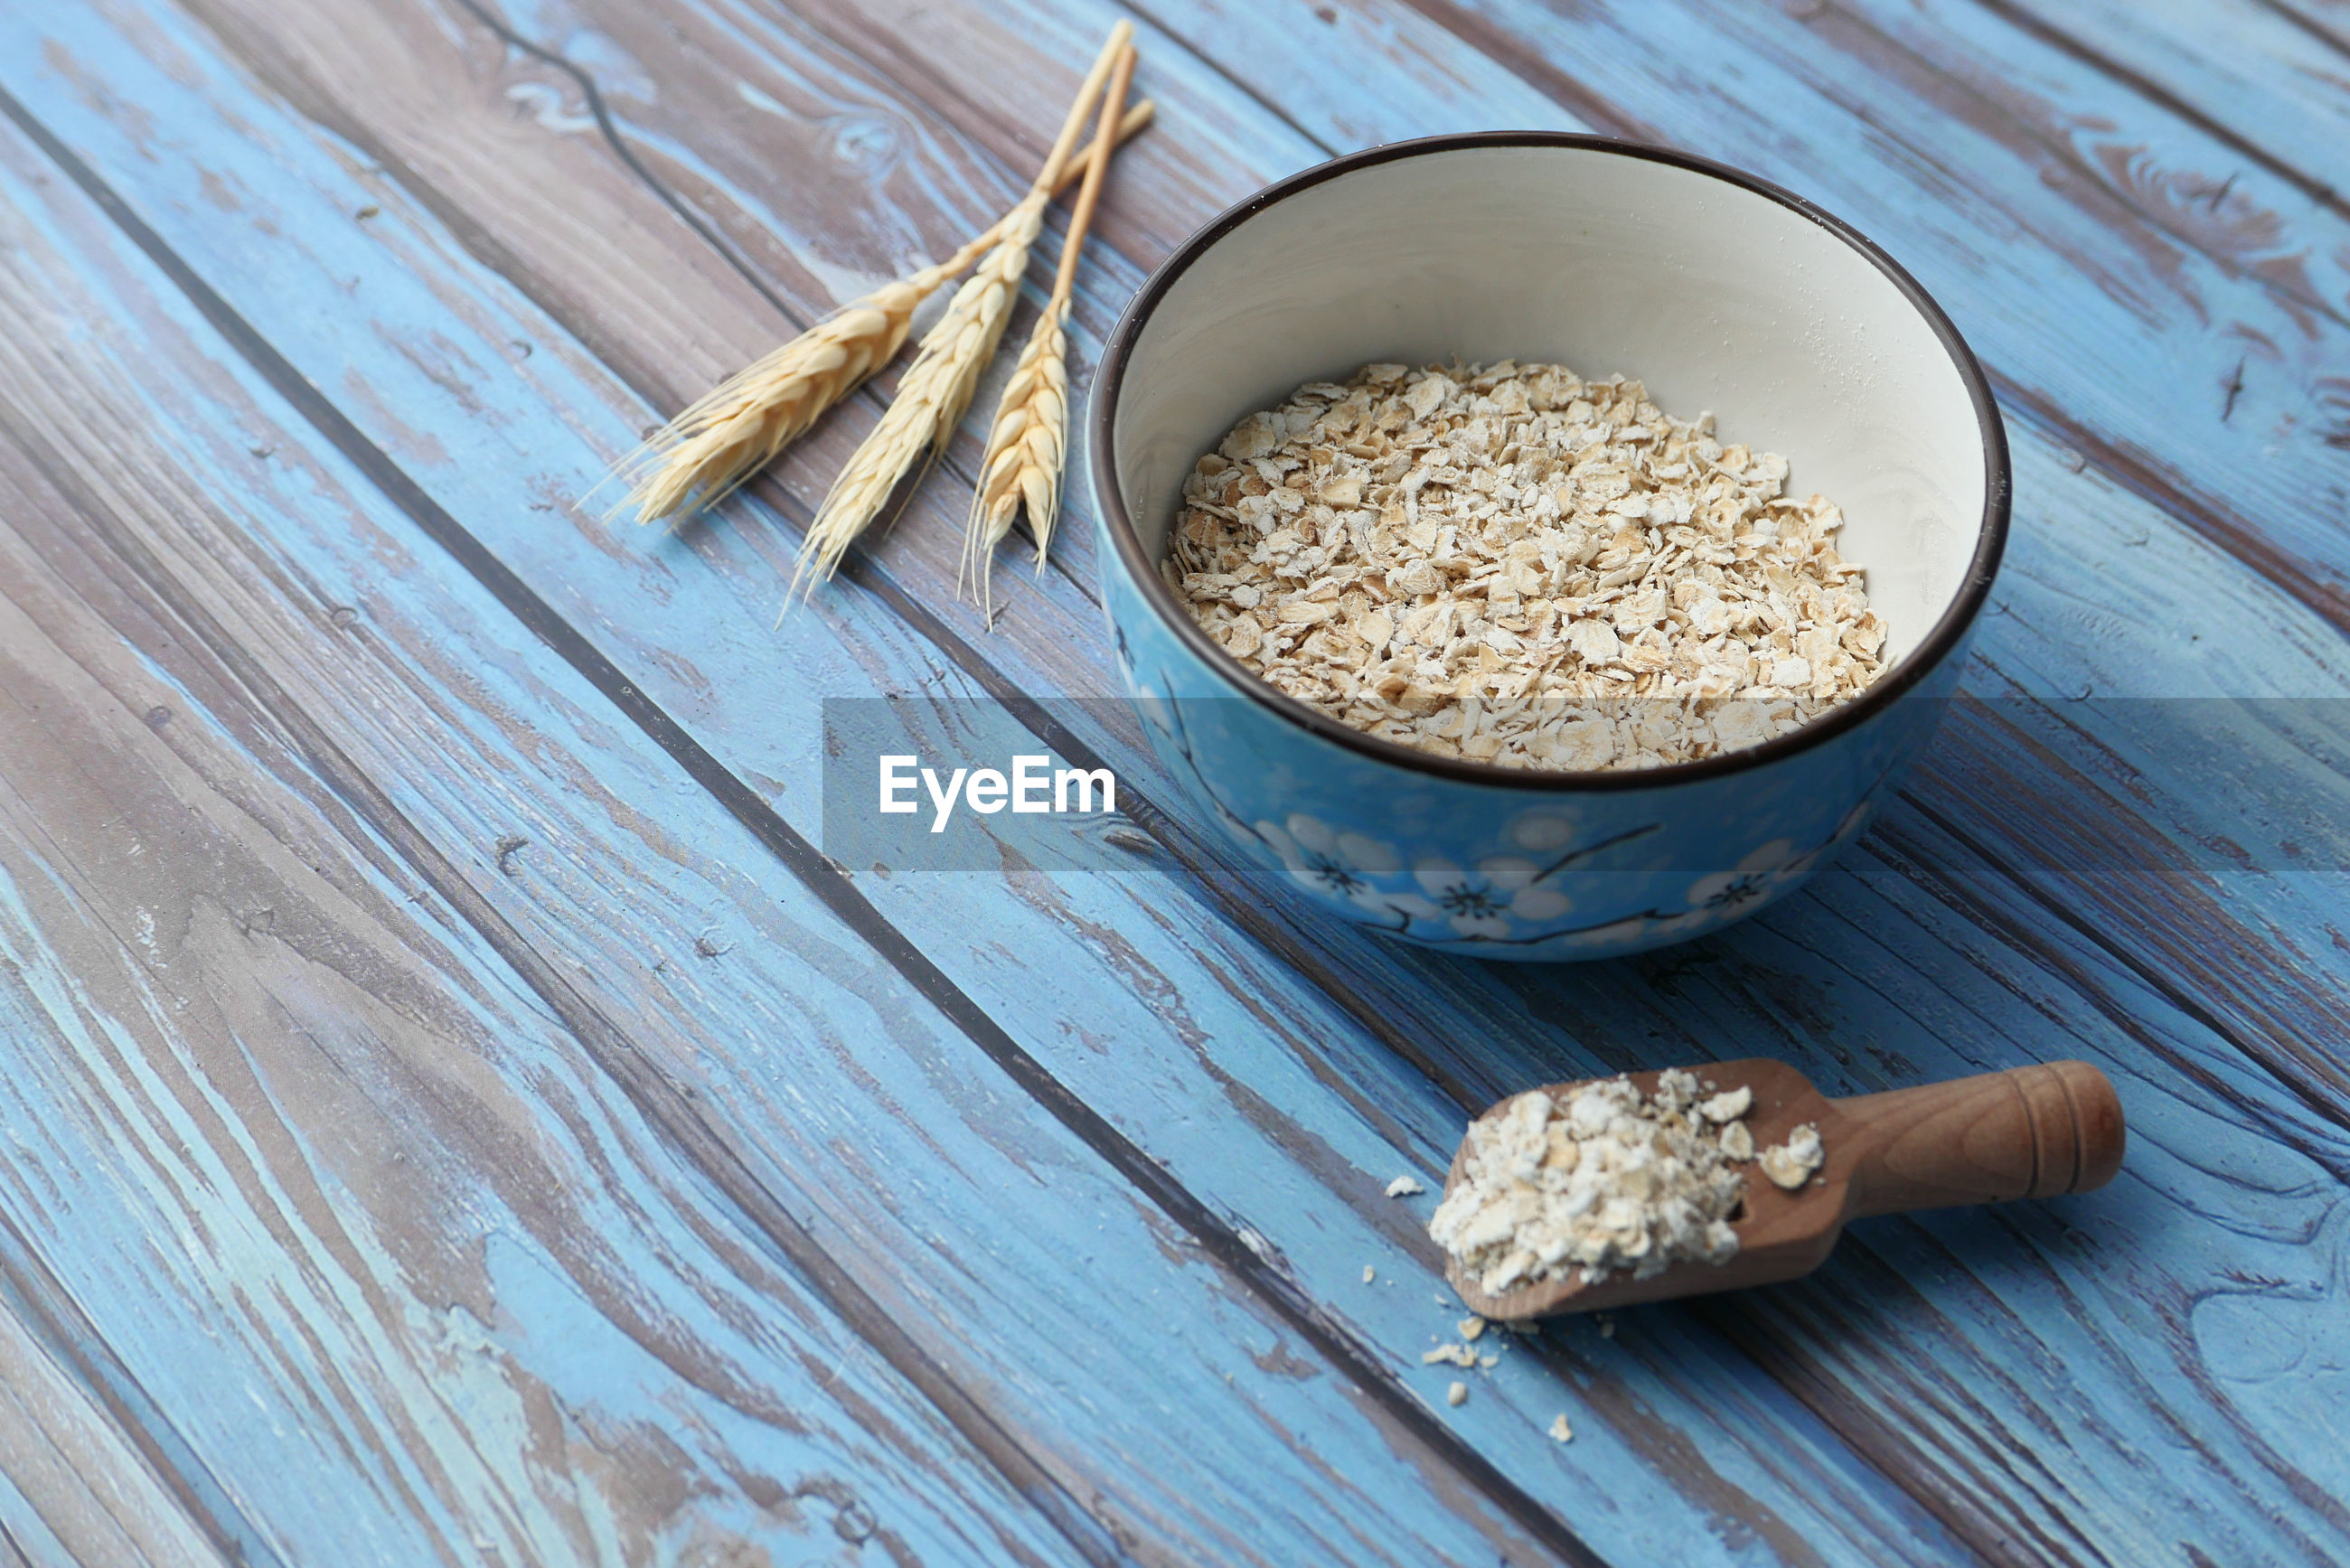 High angle view of oats flakes on in a bowl on table.